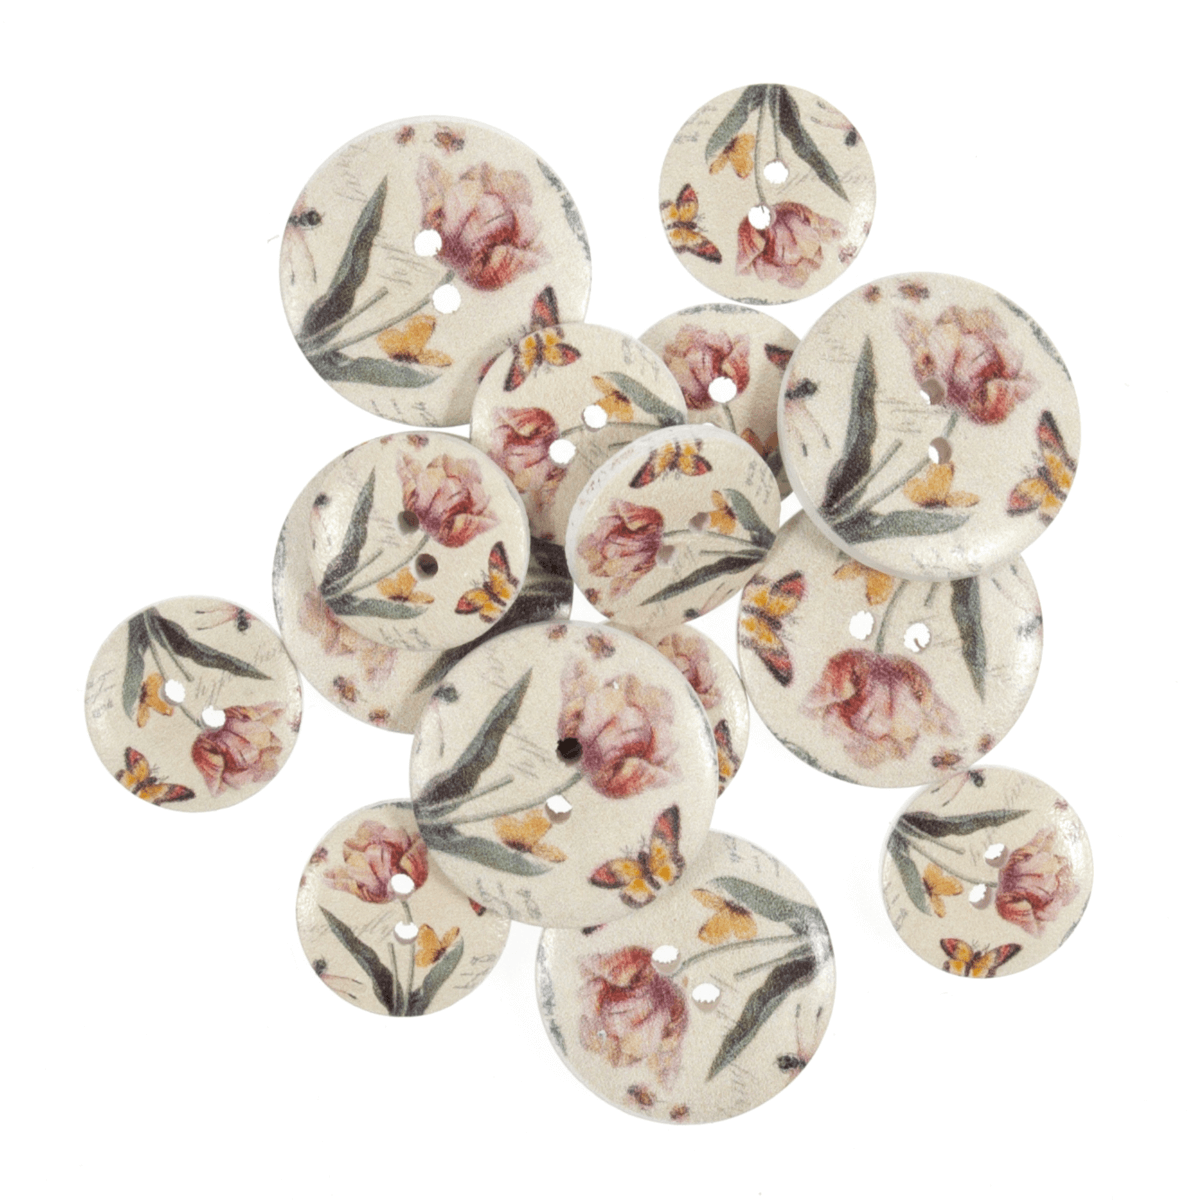 15 x Assorted Floral Red Flowers Wooden Craft Buttons 18mm - 25mm